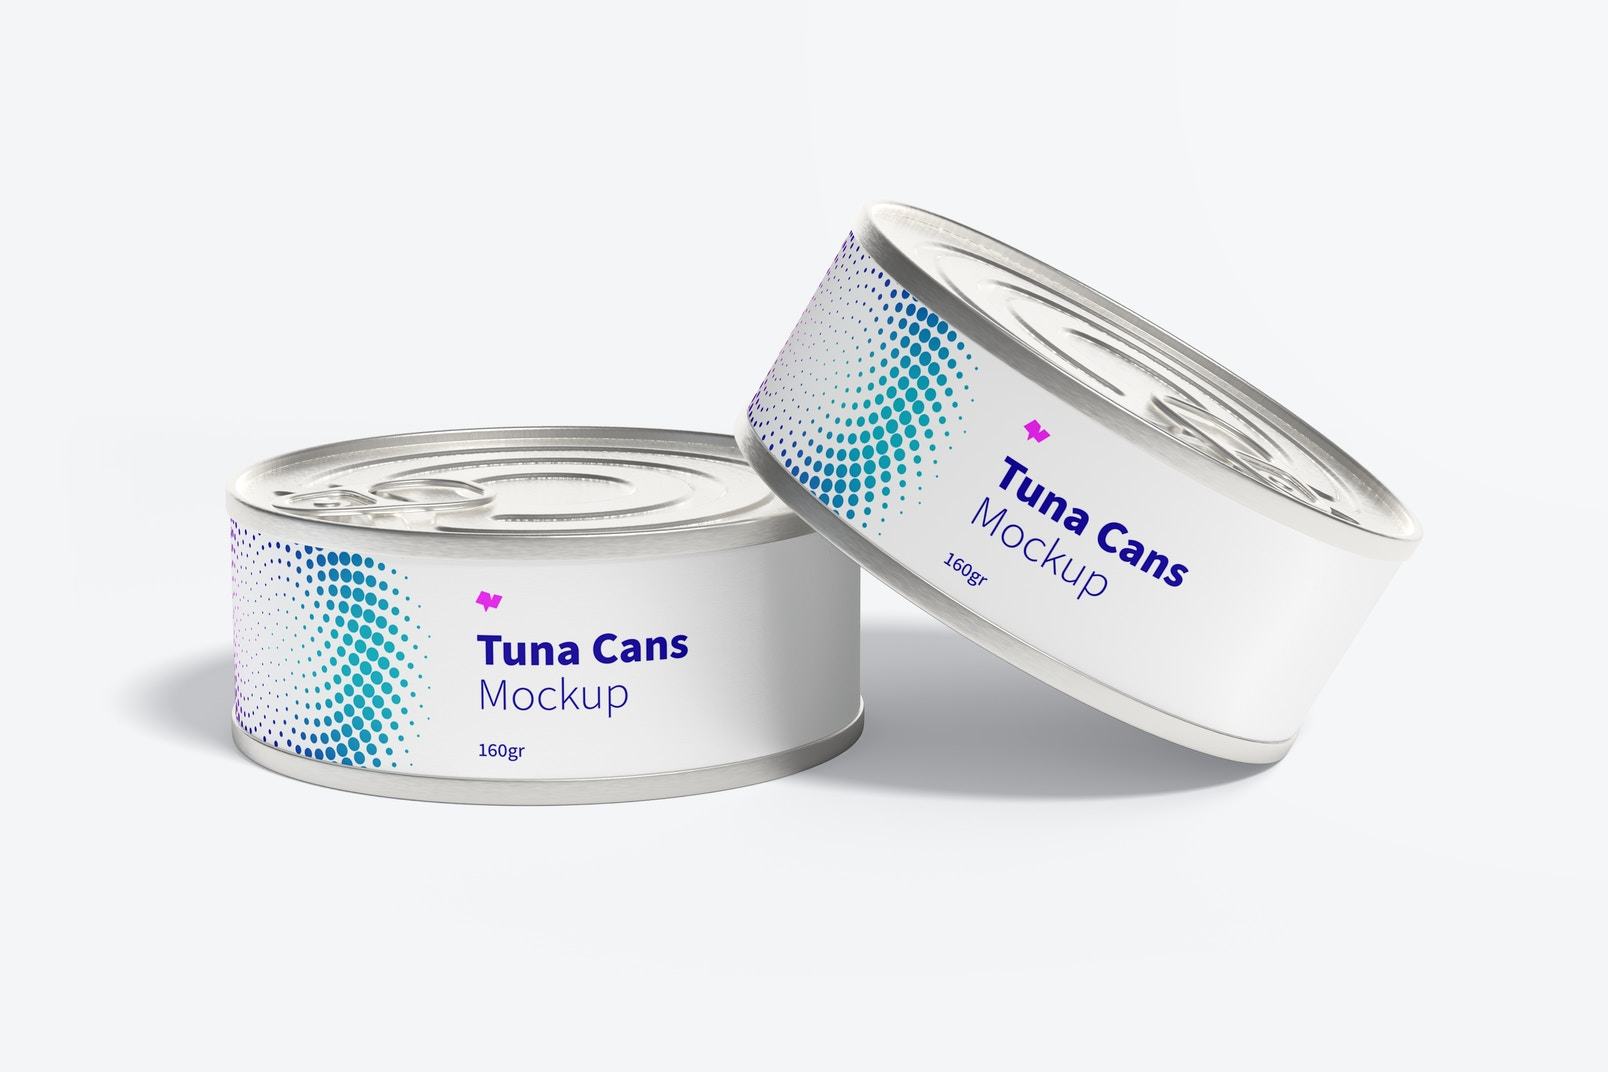 160gr Tuna Cans Mockup, Front View